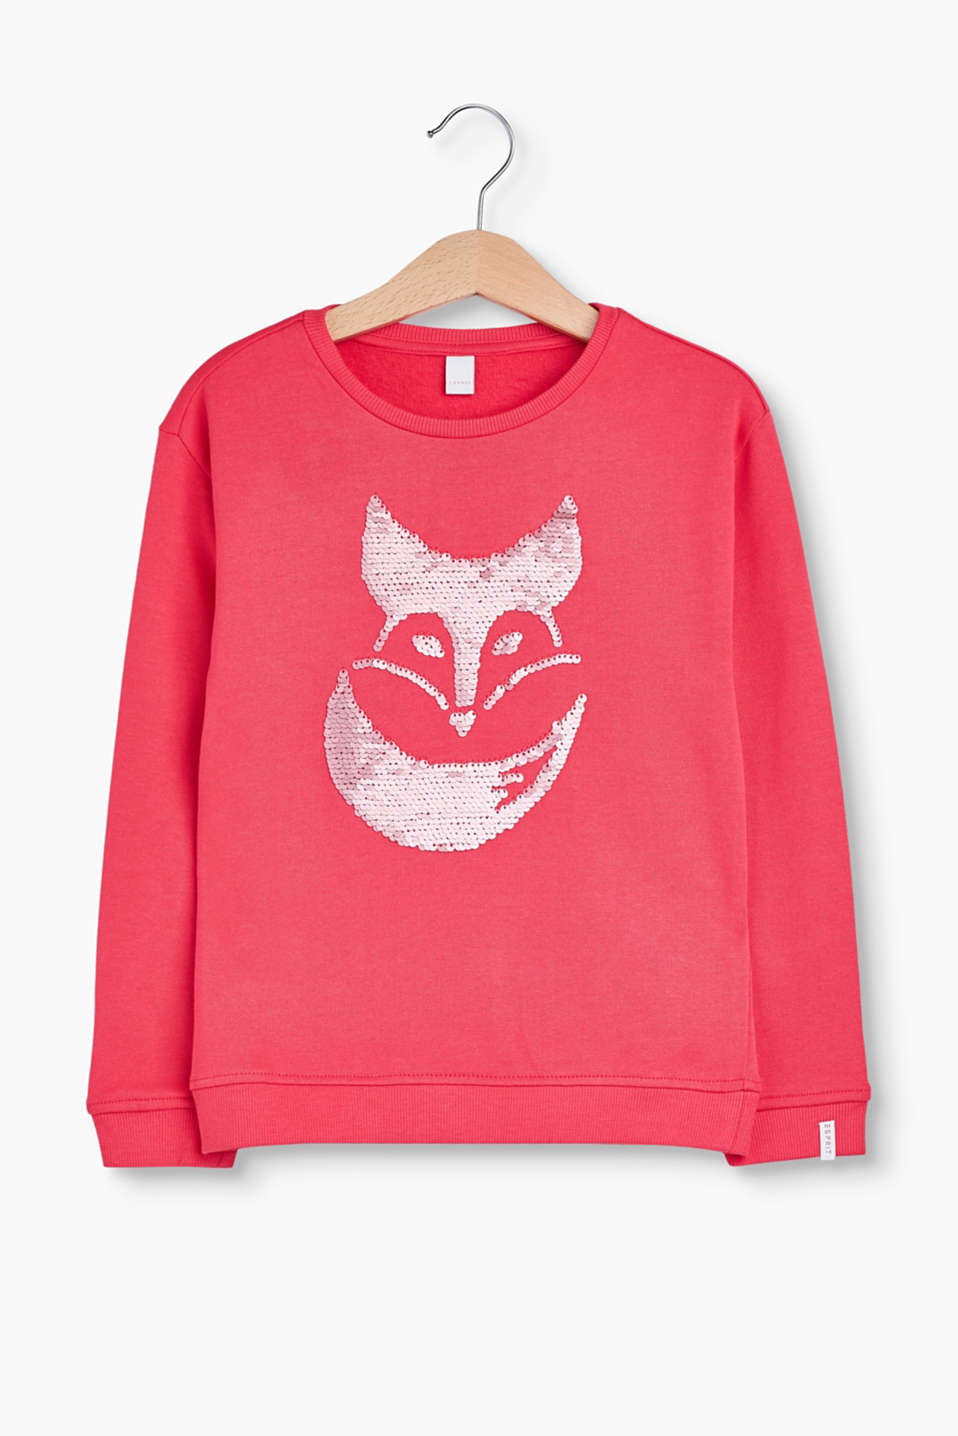 This sweatshirt with its dazzling reversible sequins guarantees the fun factor and glamour!